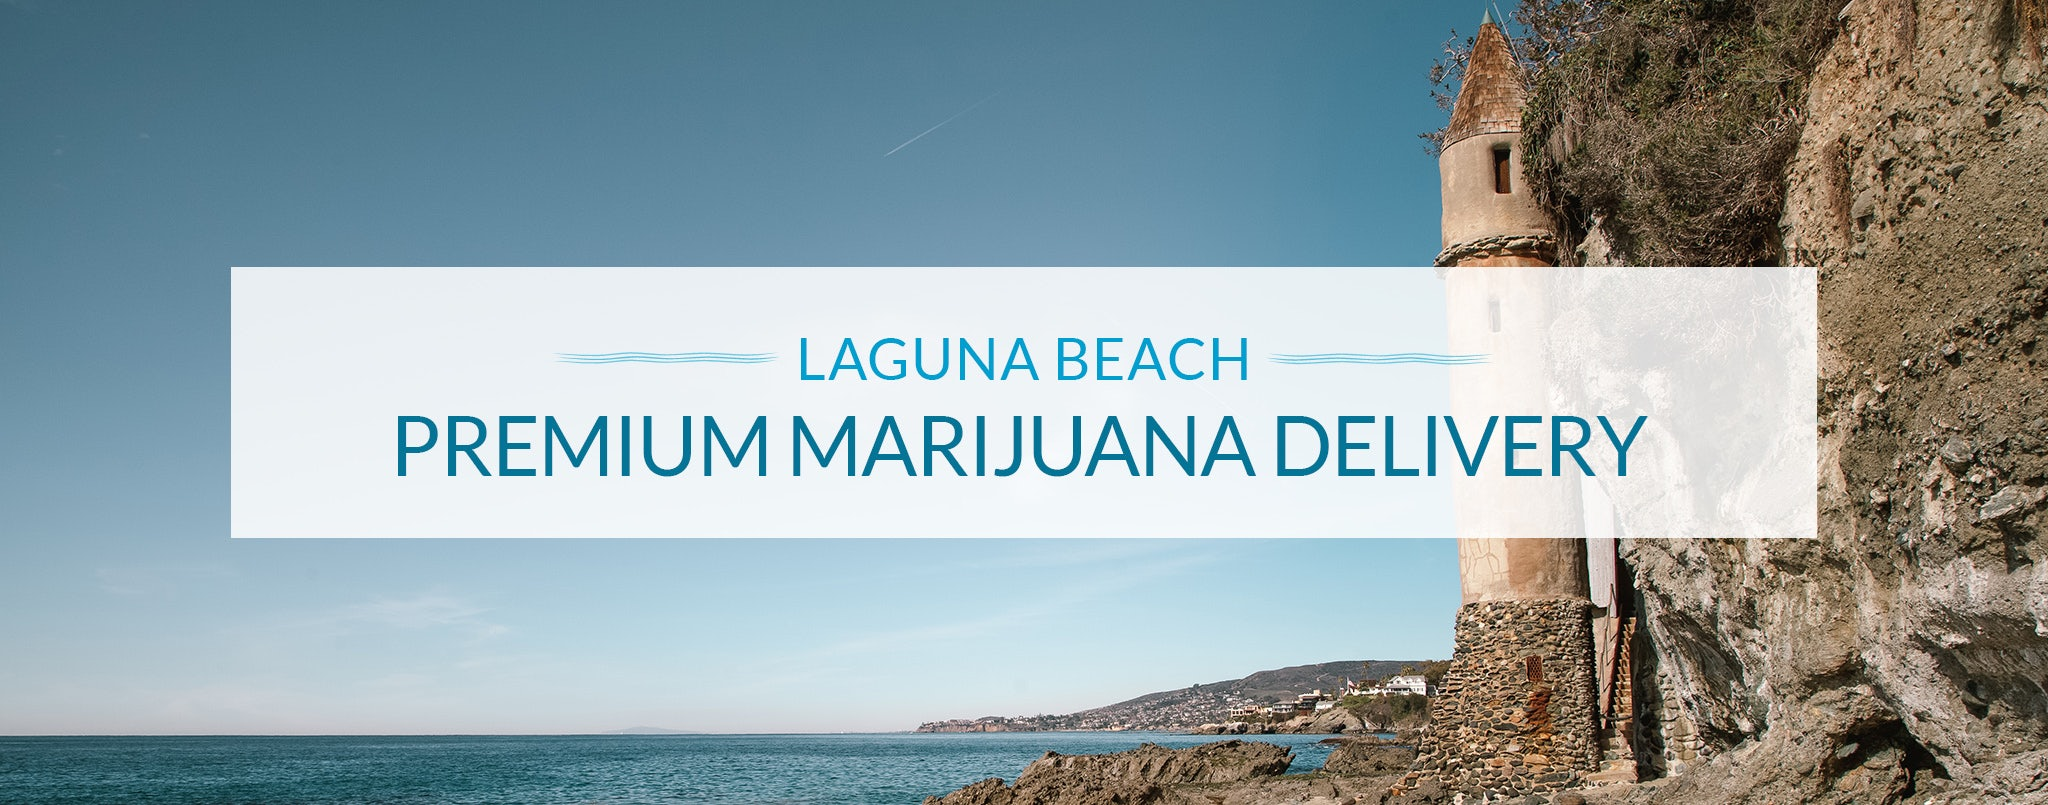 weed delivery Laguna Beach